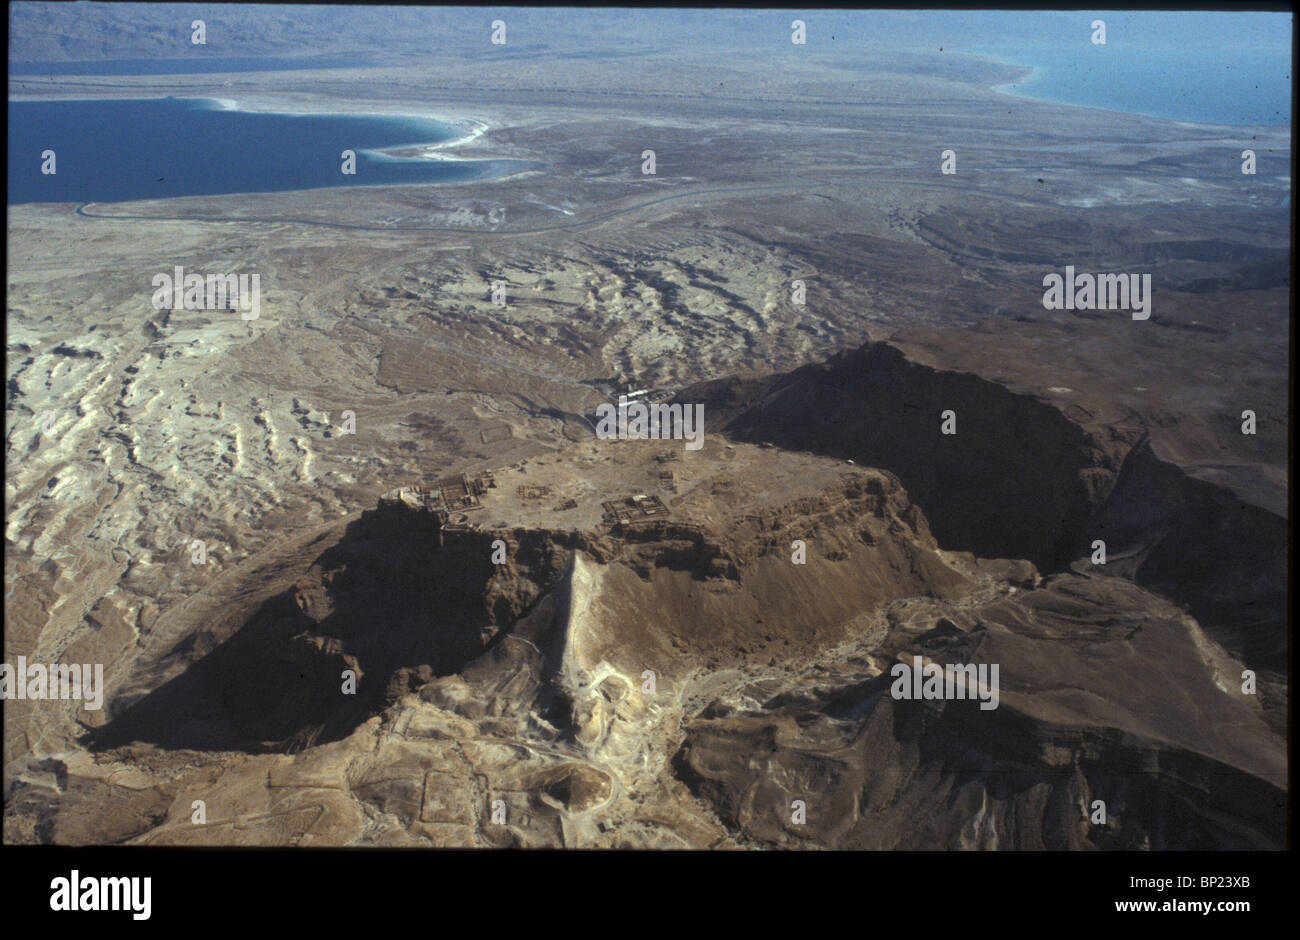 MASSADA - LOCATED IN THE RUGGED EASTERN DESERT OF JUDEA NEAR THE DEAD SEA. KING HEROD FORTIFIED IT & BUILT ON IT Stock Photo